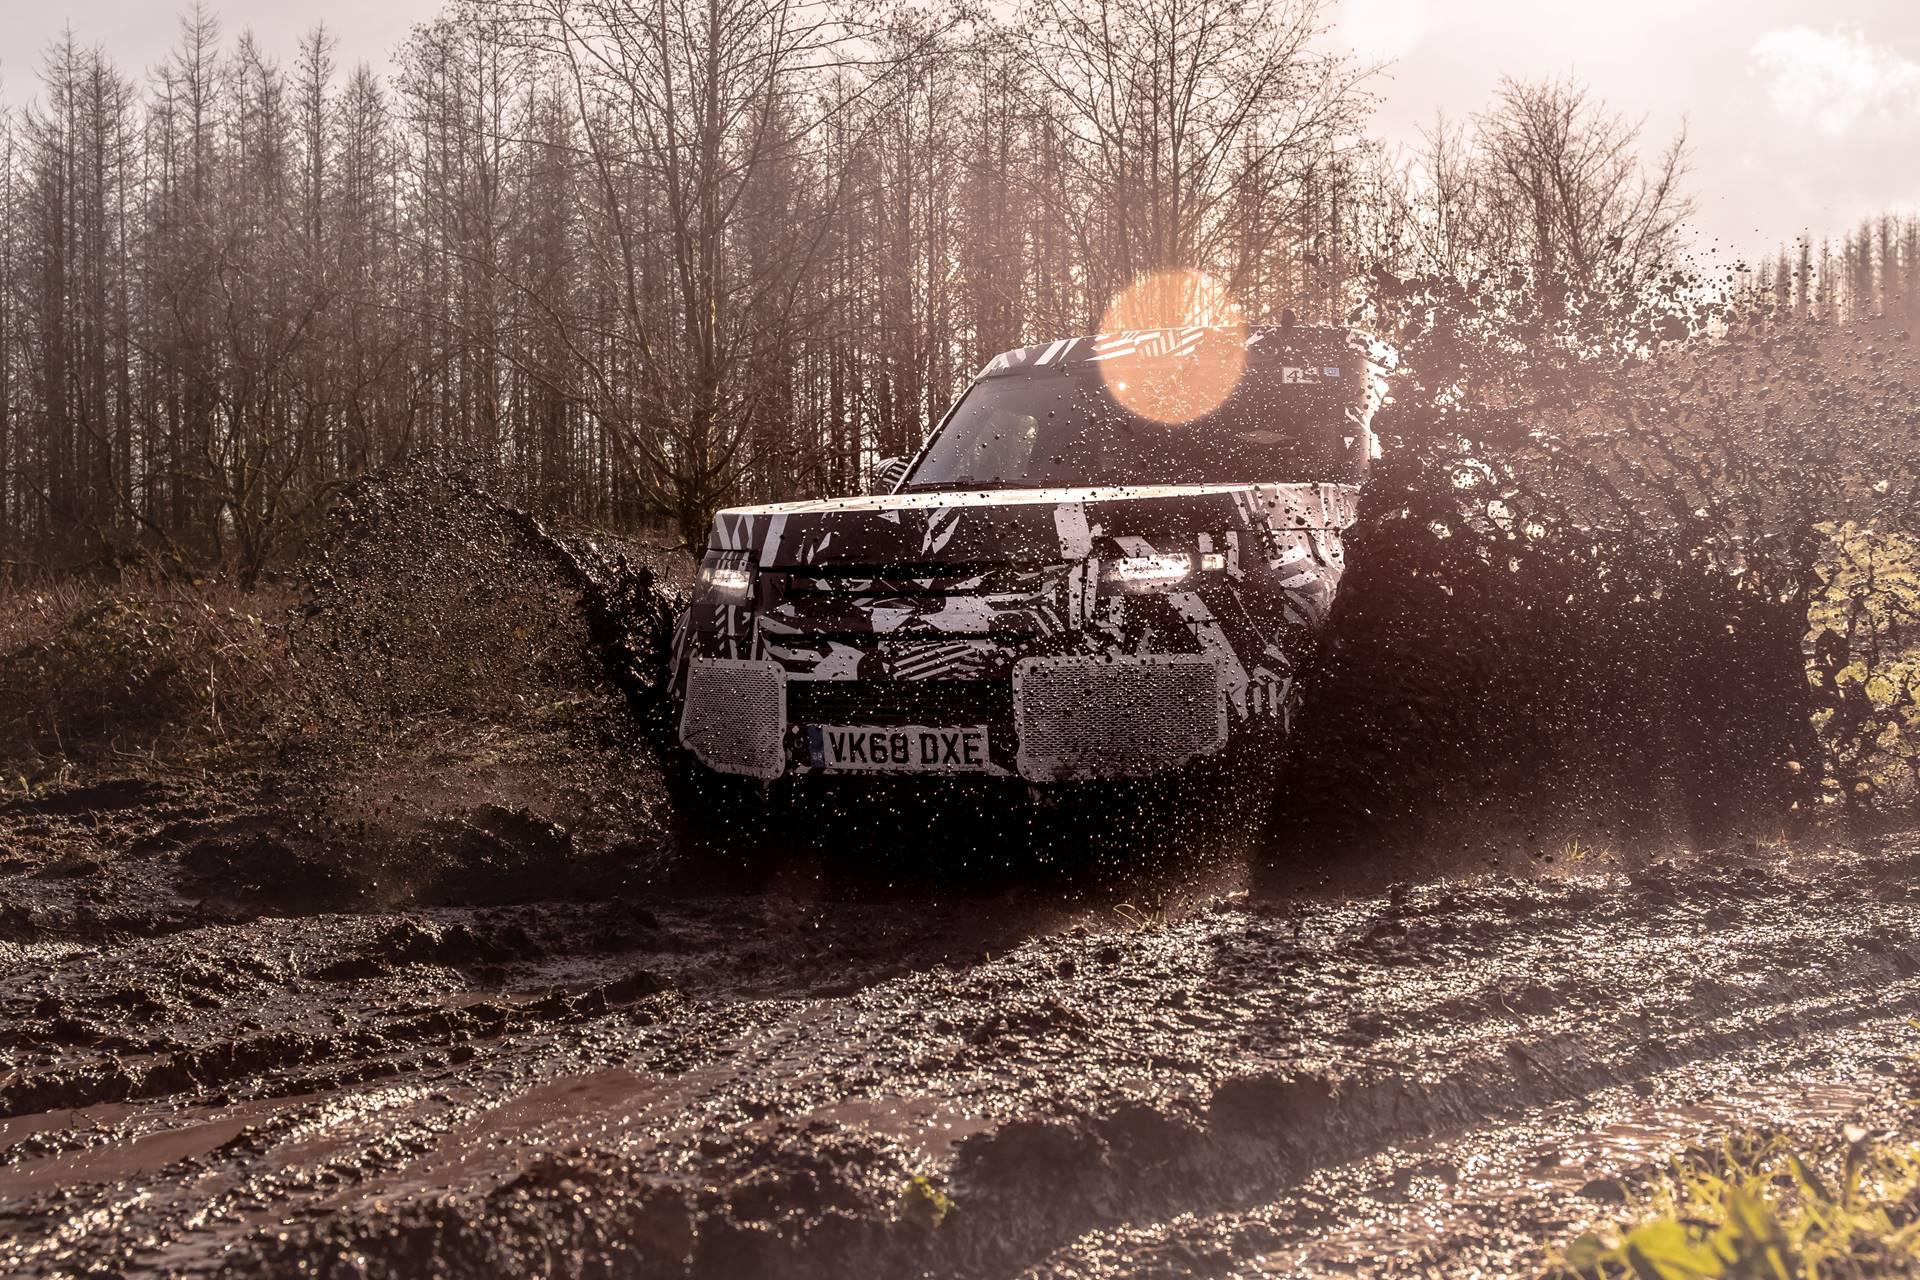 New Land Rover Defender: Reinventing A Design Icon